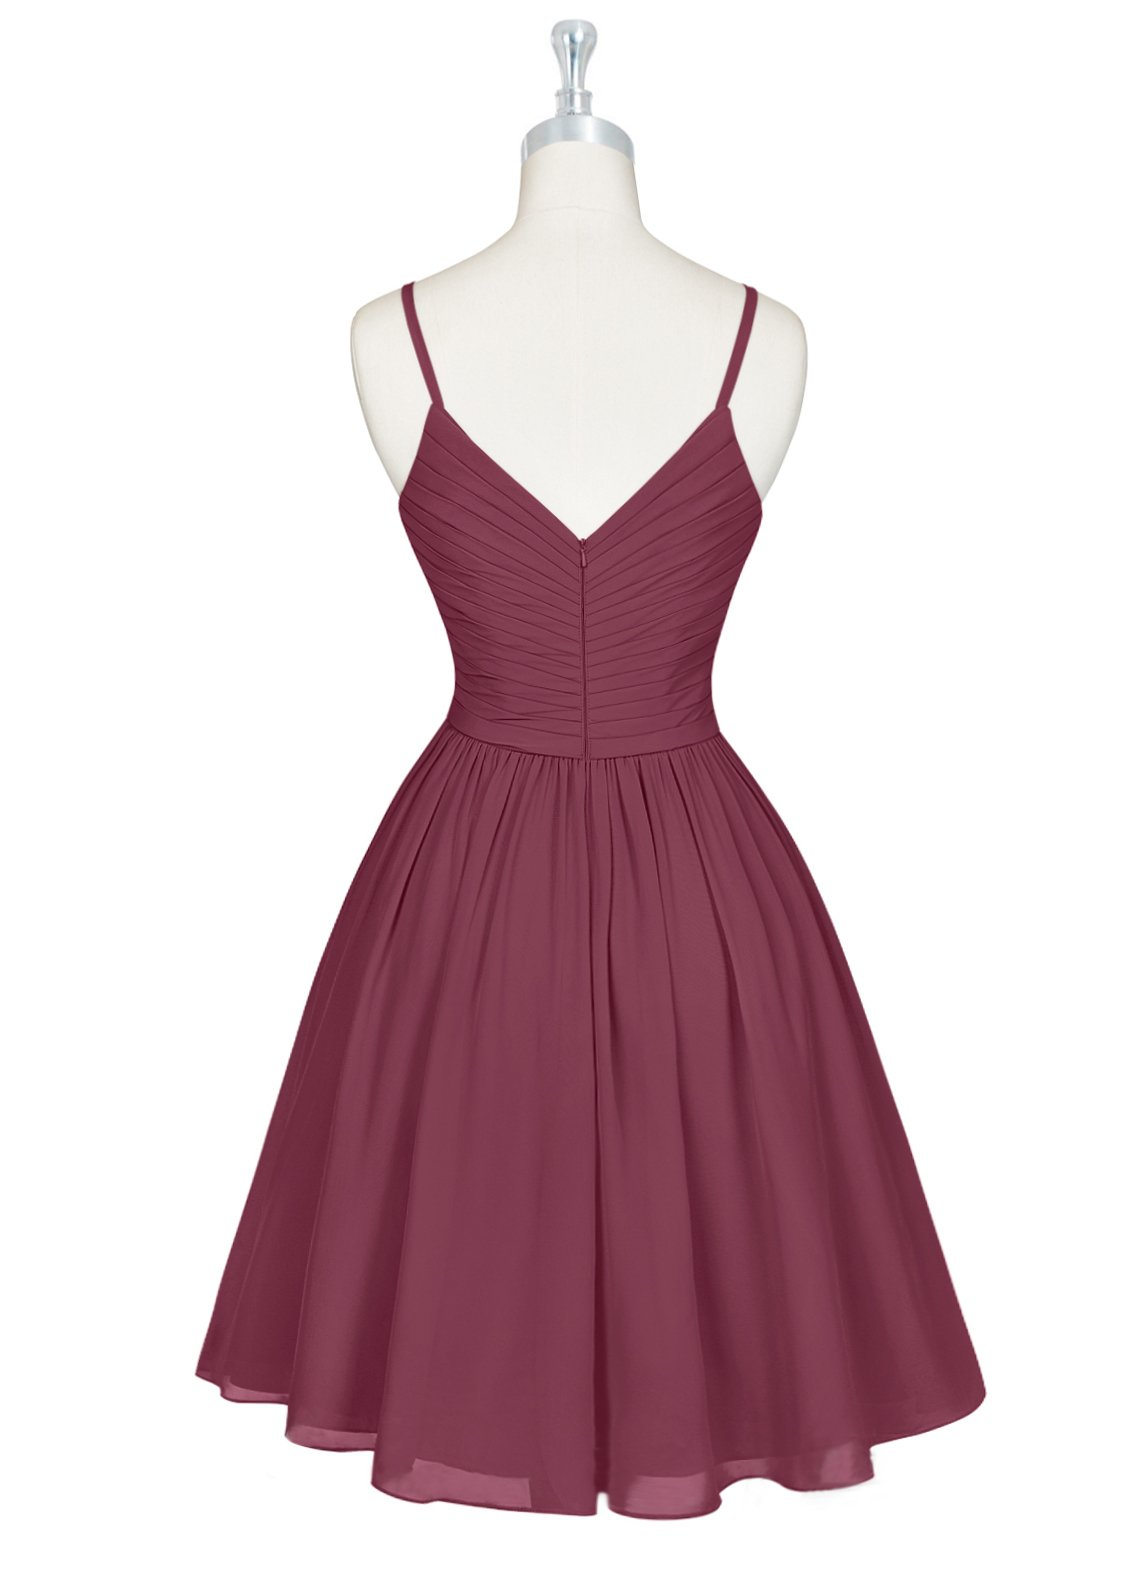 Short Tulle Bridesmaid Dress Cap Sleeve Cocktail Prom Party Teen Homecoming Gown